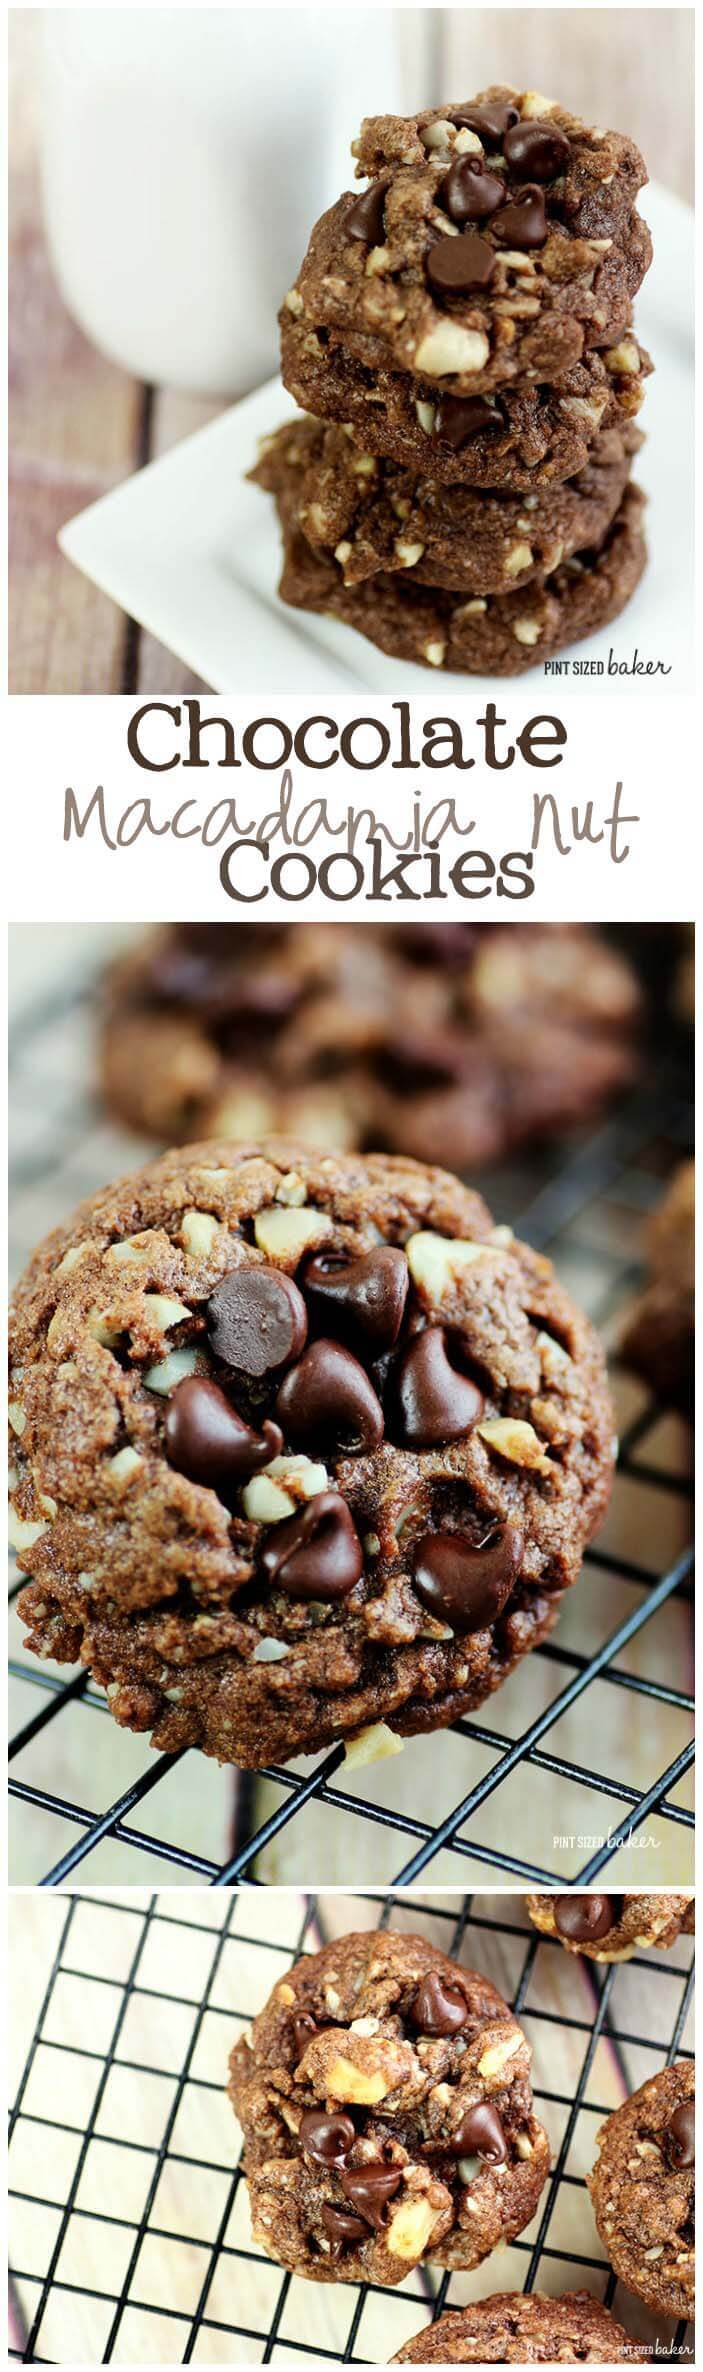 Chocolate Macadamia Nut Cookies are perfect for your chocolate cravings! I keep them frozen and then enjoy a few whenever I want.